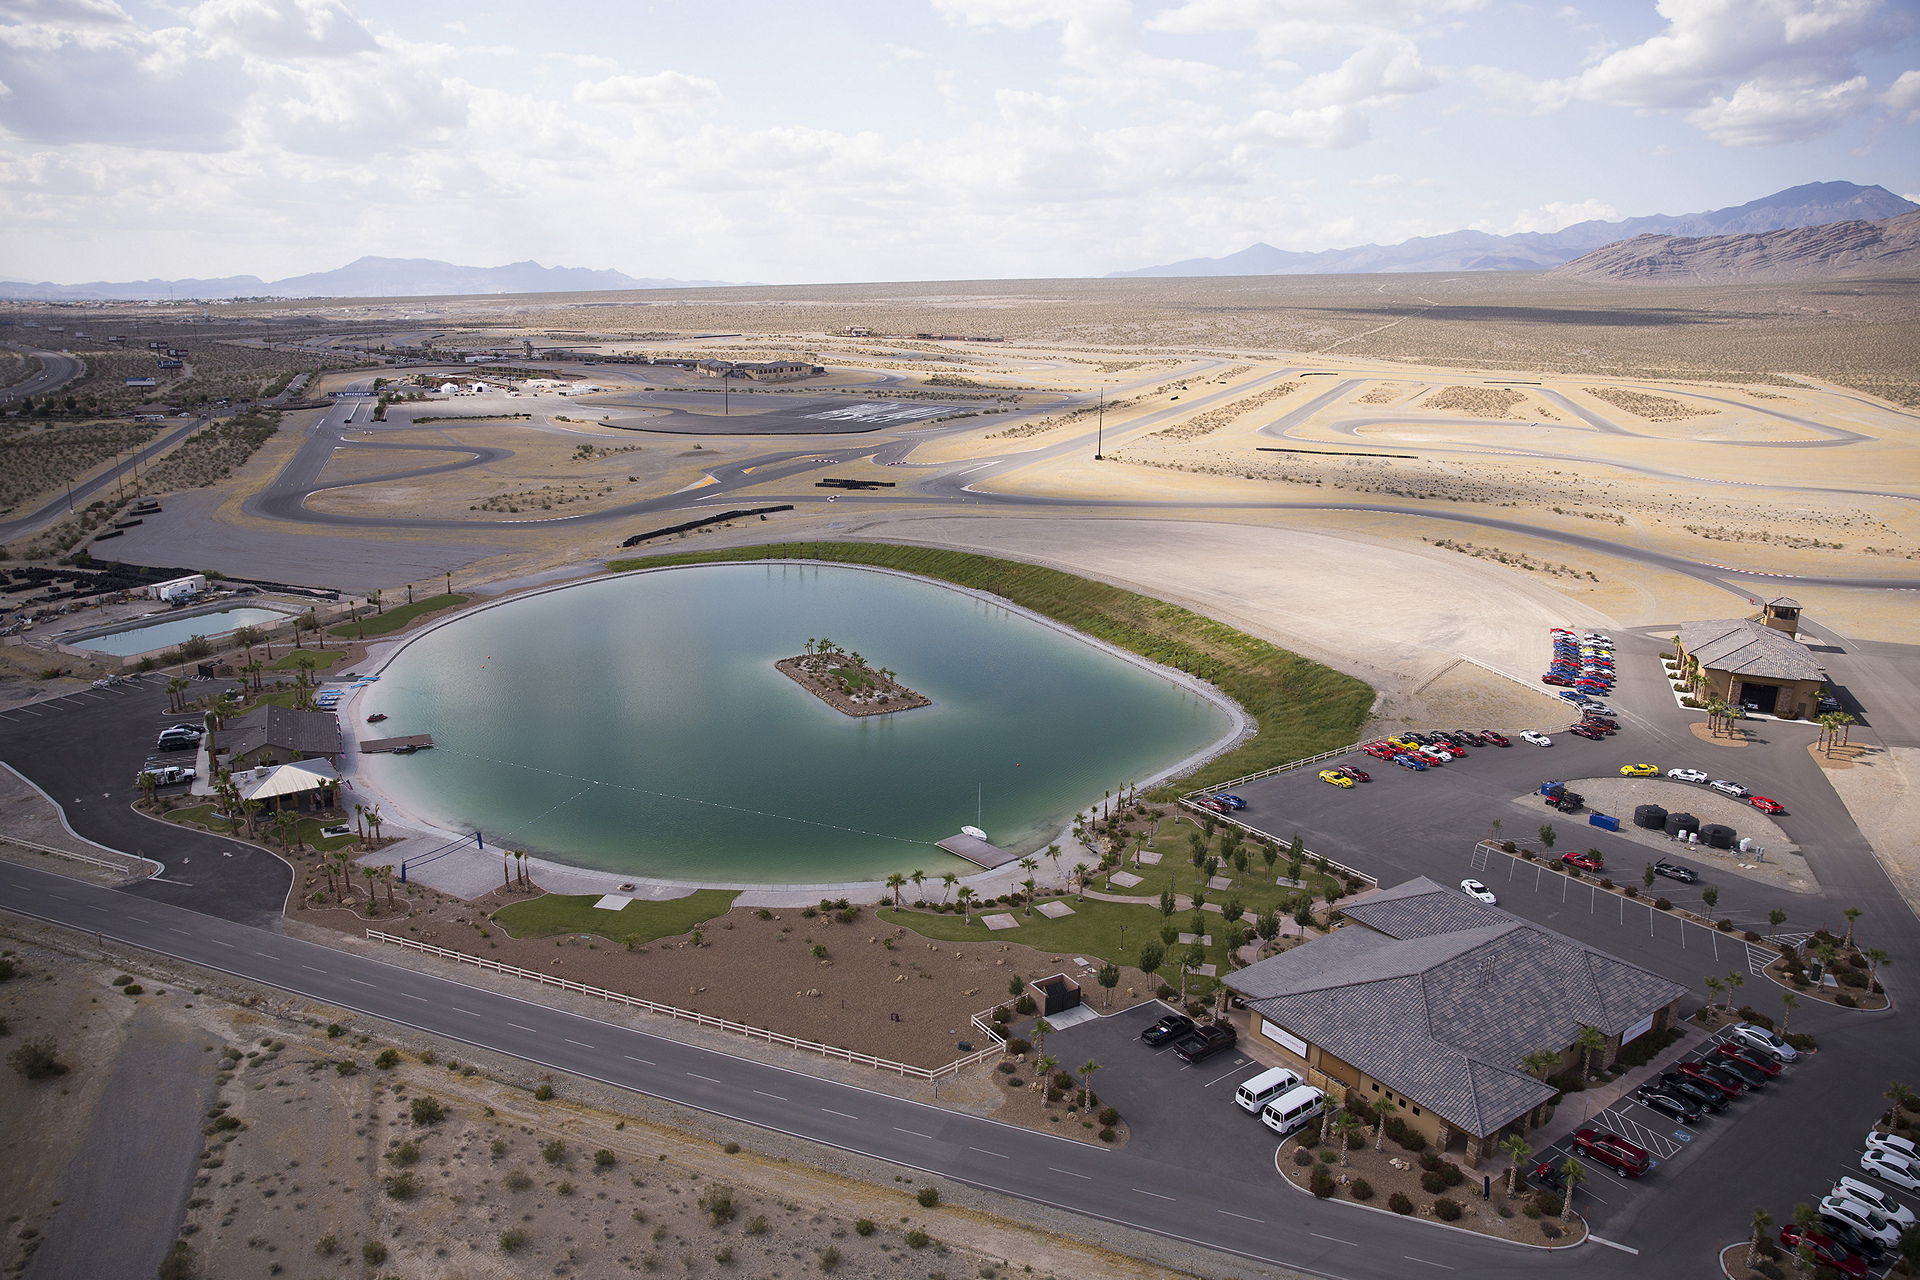 Located 55 miles west of the Las Vegas Strip, Spring Mountain Motor Resort and Country Club boasts the longest road course in North America © General Motors